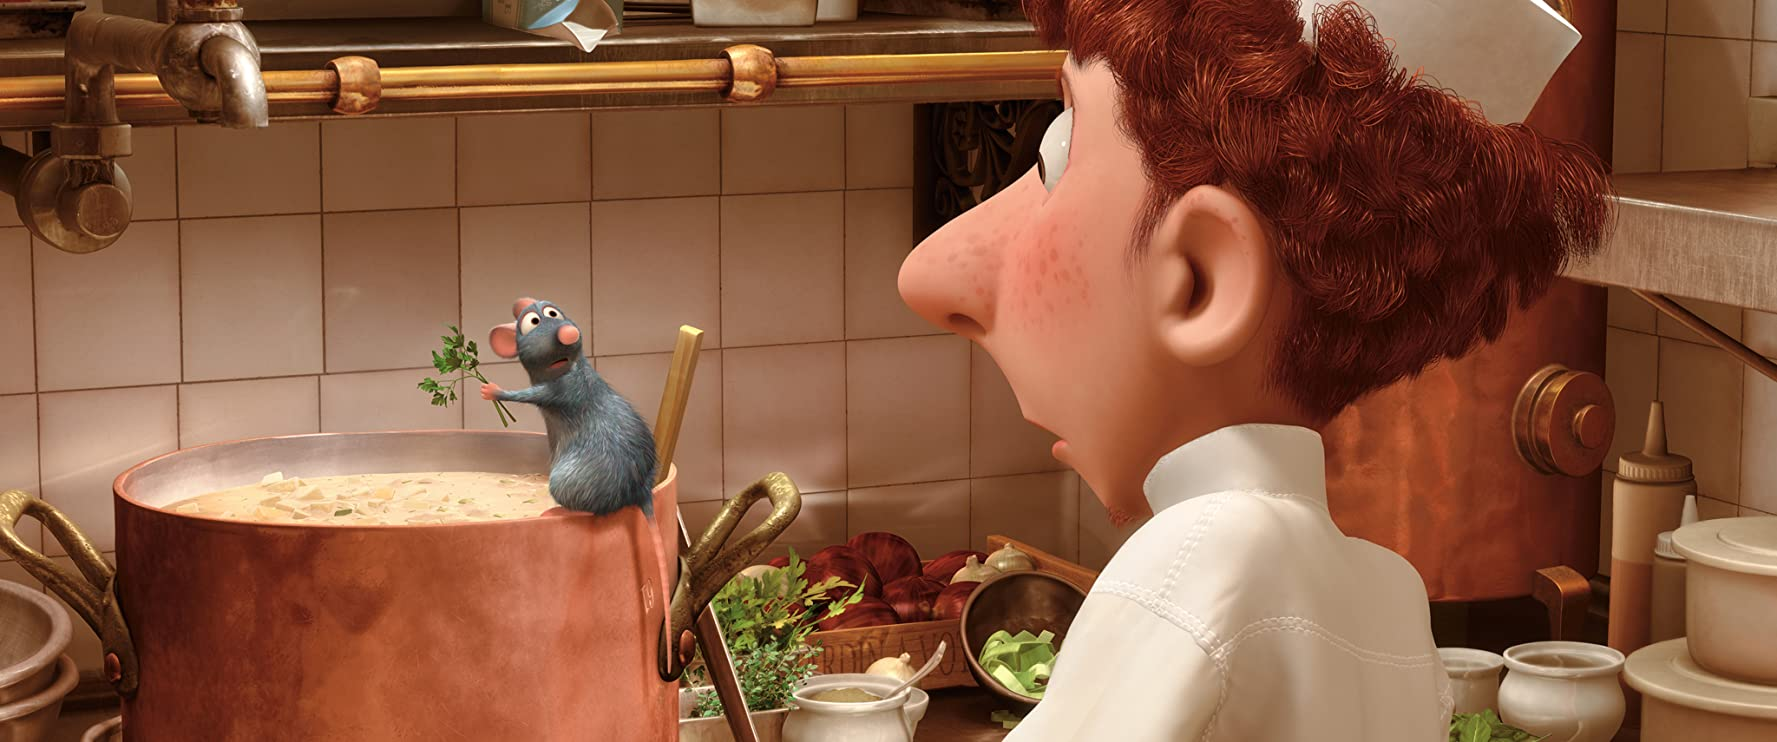 Patton Oswalt and Lou Romano in Ratatouille (2007)